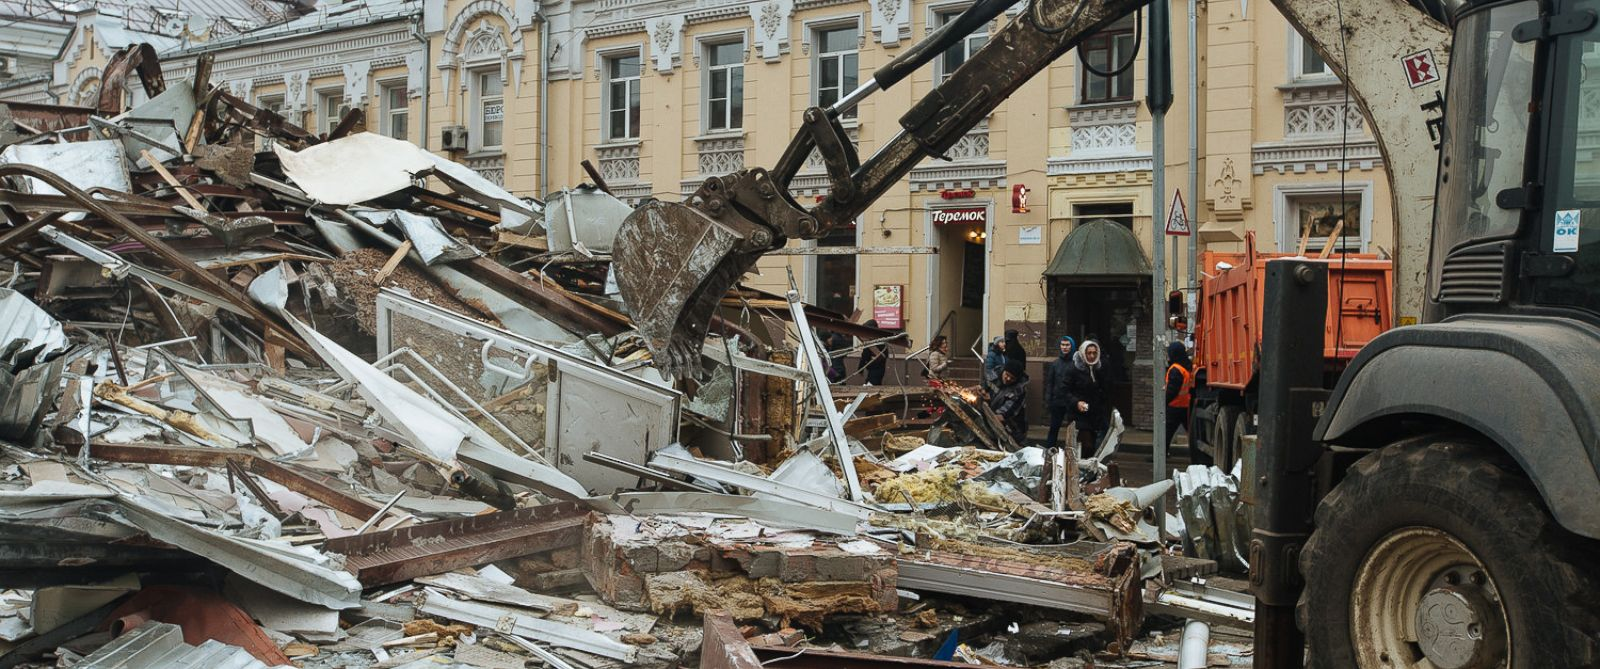 PHOTO: The scene in central Moscow after city officials bulldozed 100 makeshift shops, Feb. 9, 2016.